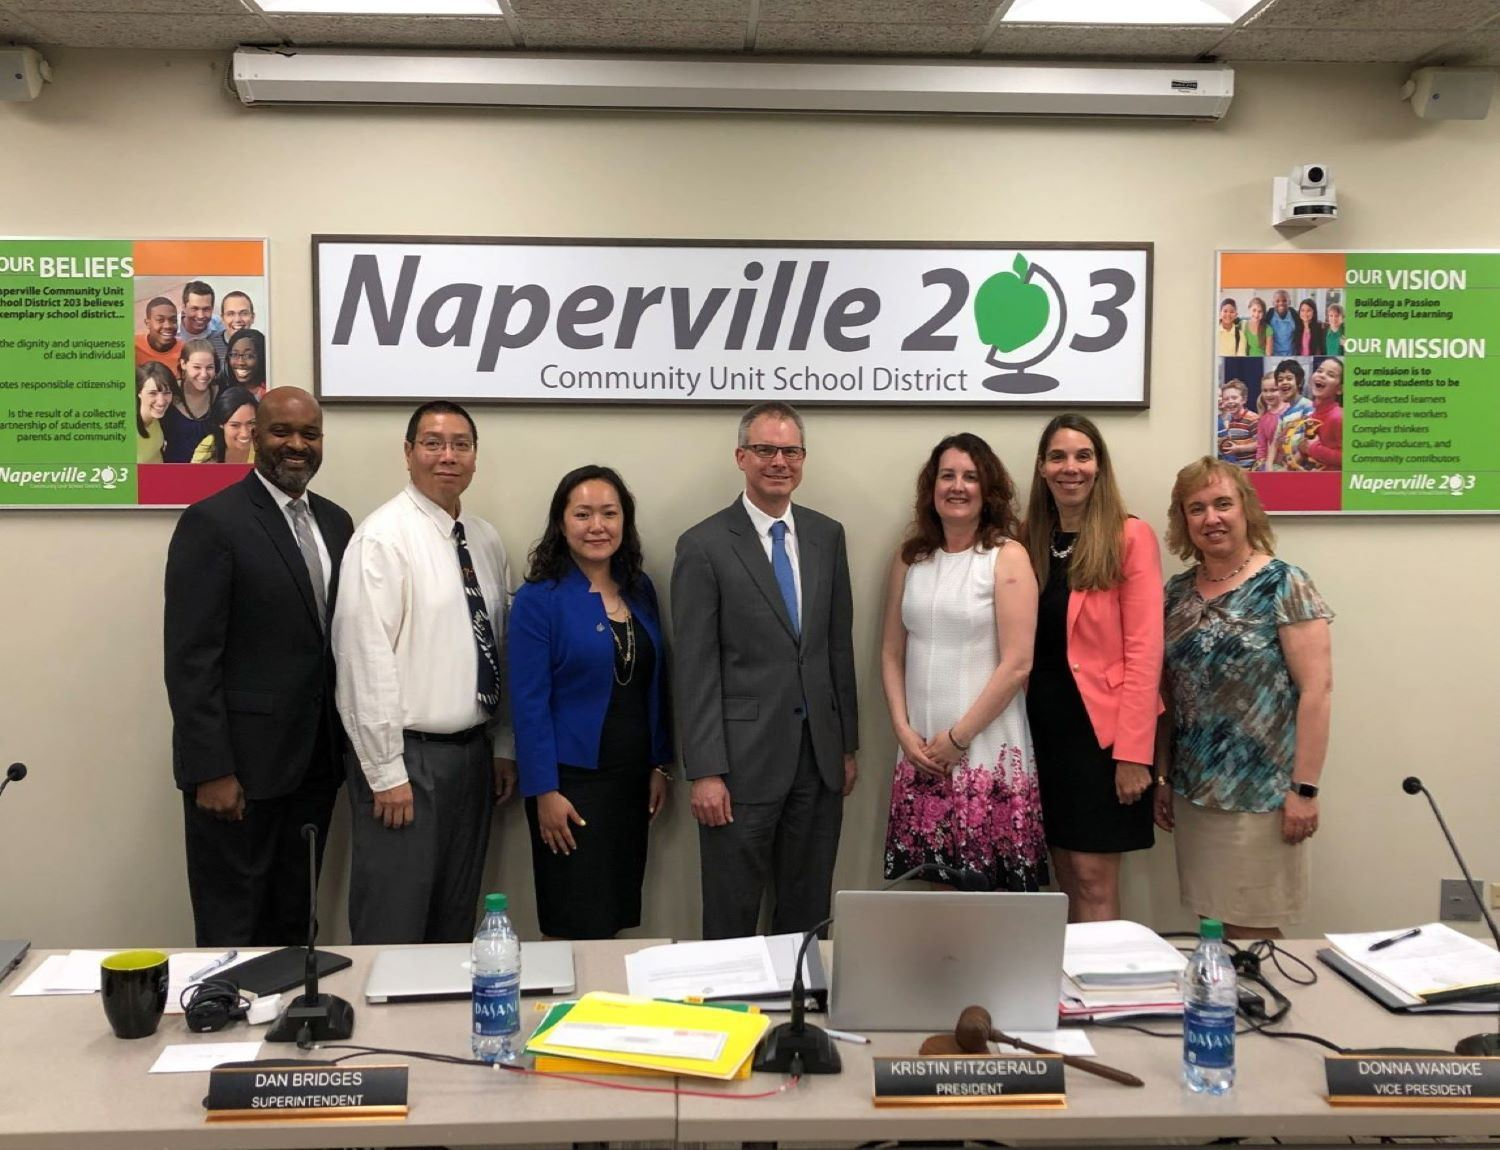 7.13.20 BOE Meeting Public Comment and Live Stream Information